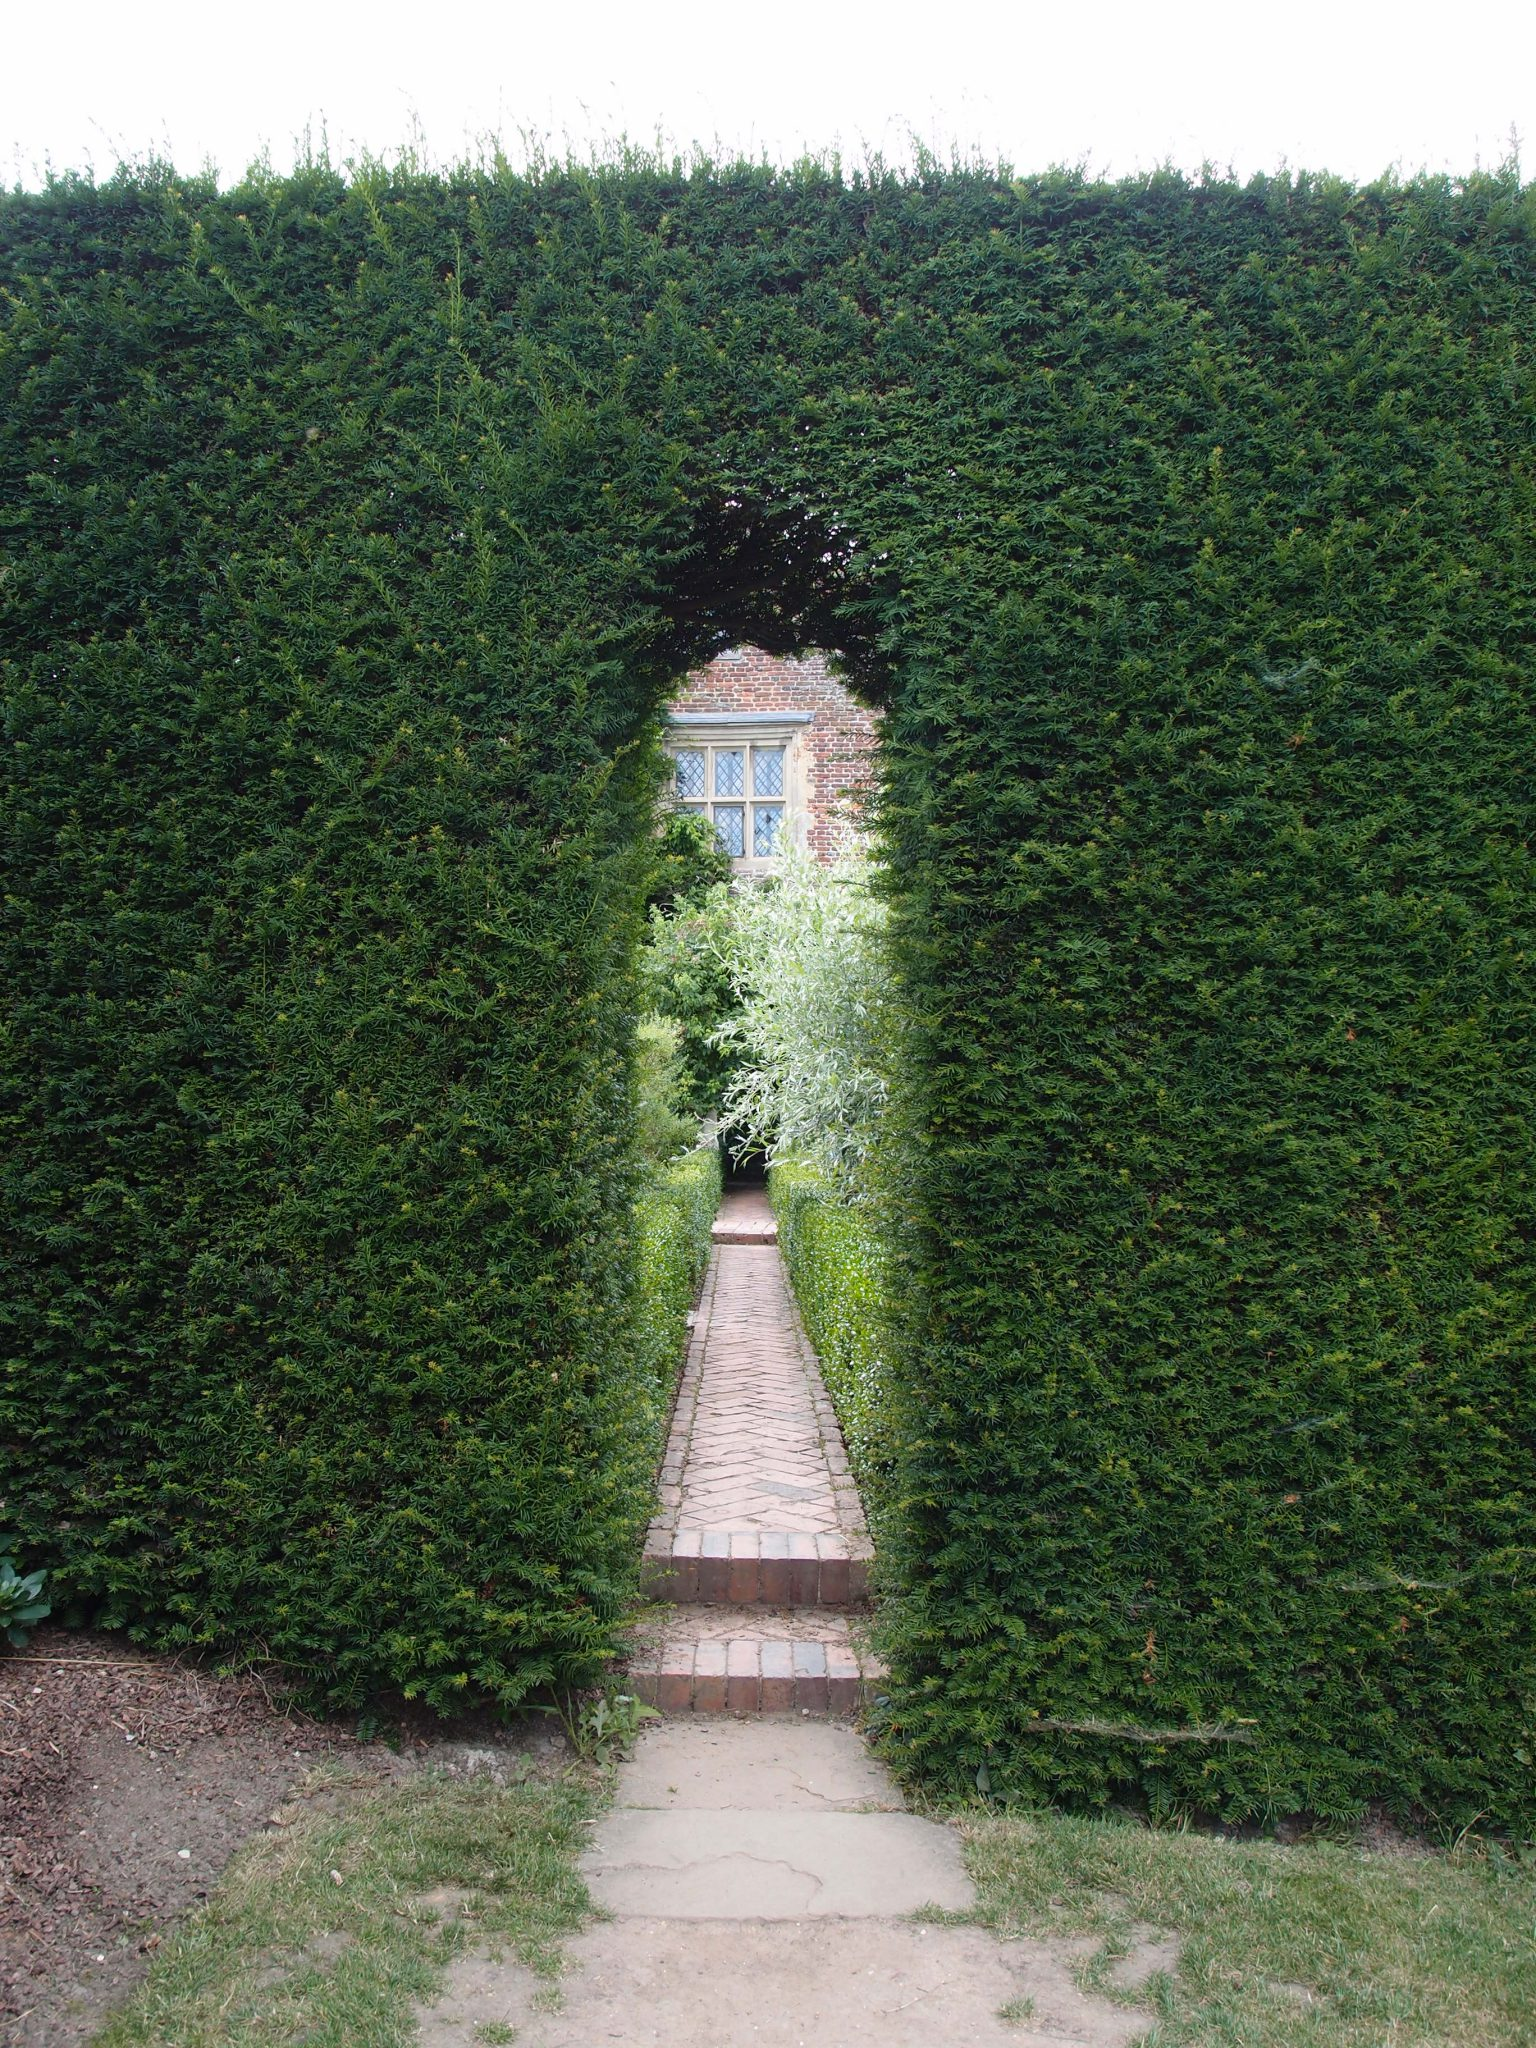 At the Northwestern edge of The Orchard, a narrow opening in the Yew Walk hedge leads us into the White Garden.